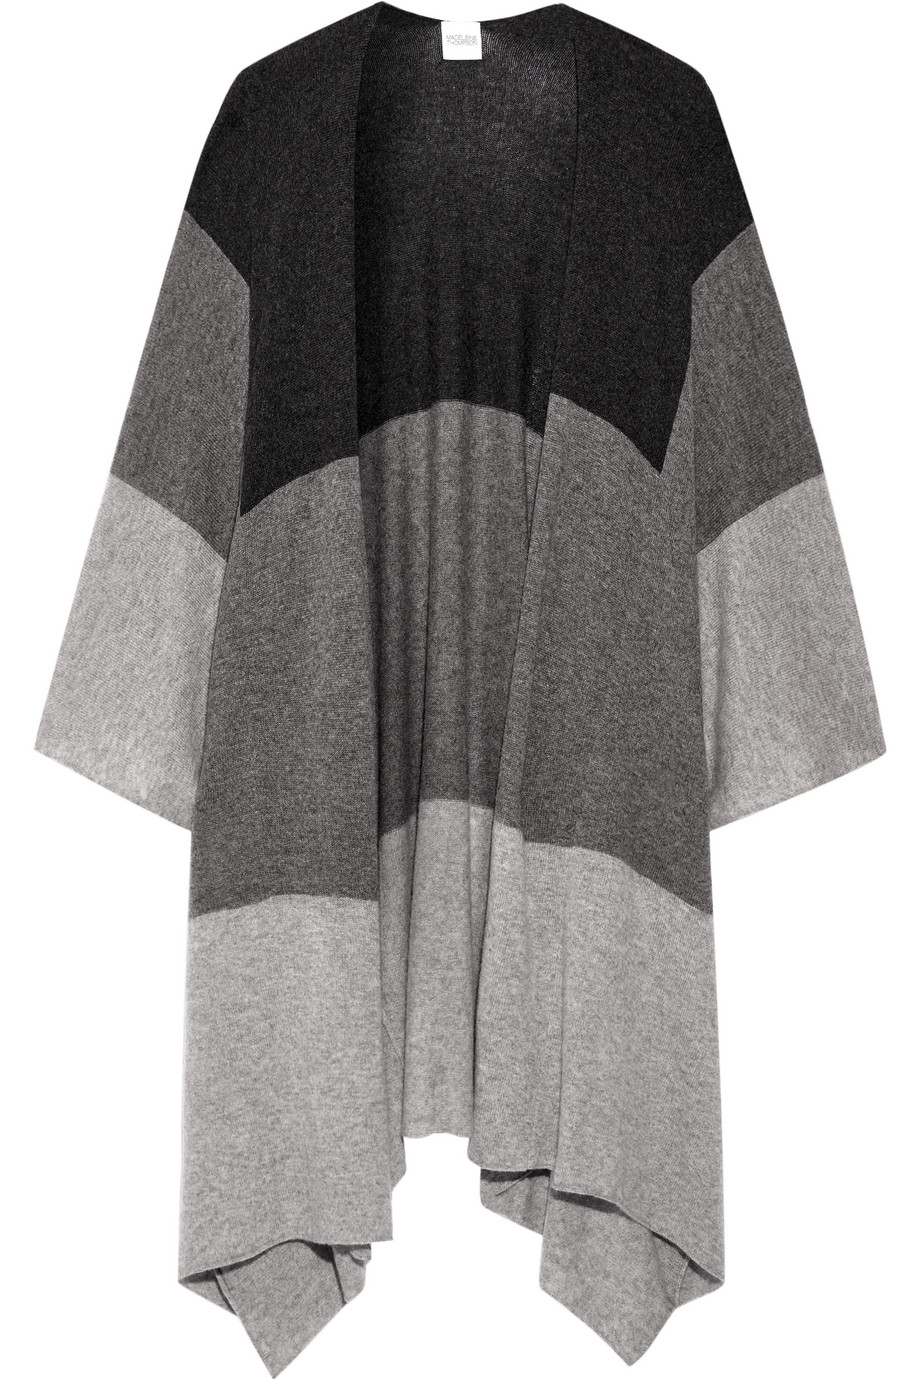 Ingelby Color-Block Cashmere Wrap, Madeleine Thompson, Gray, Women's